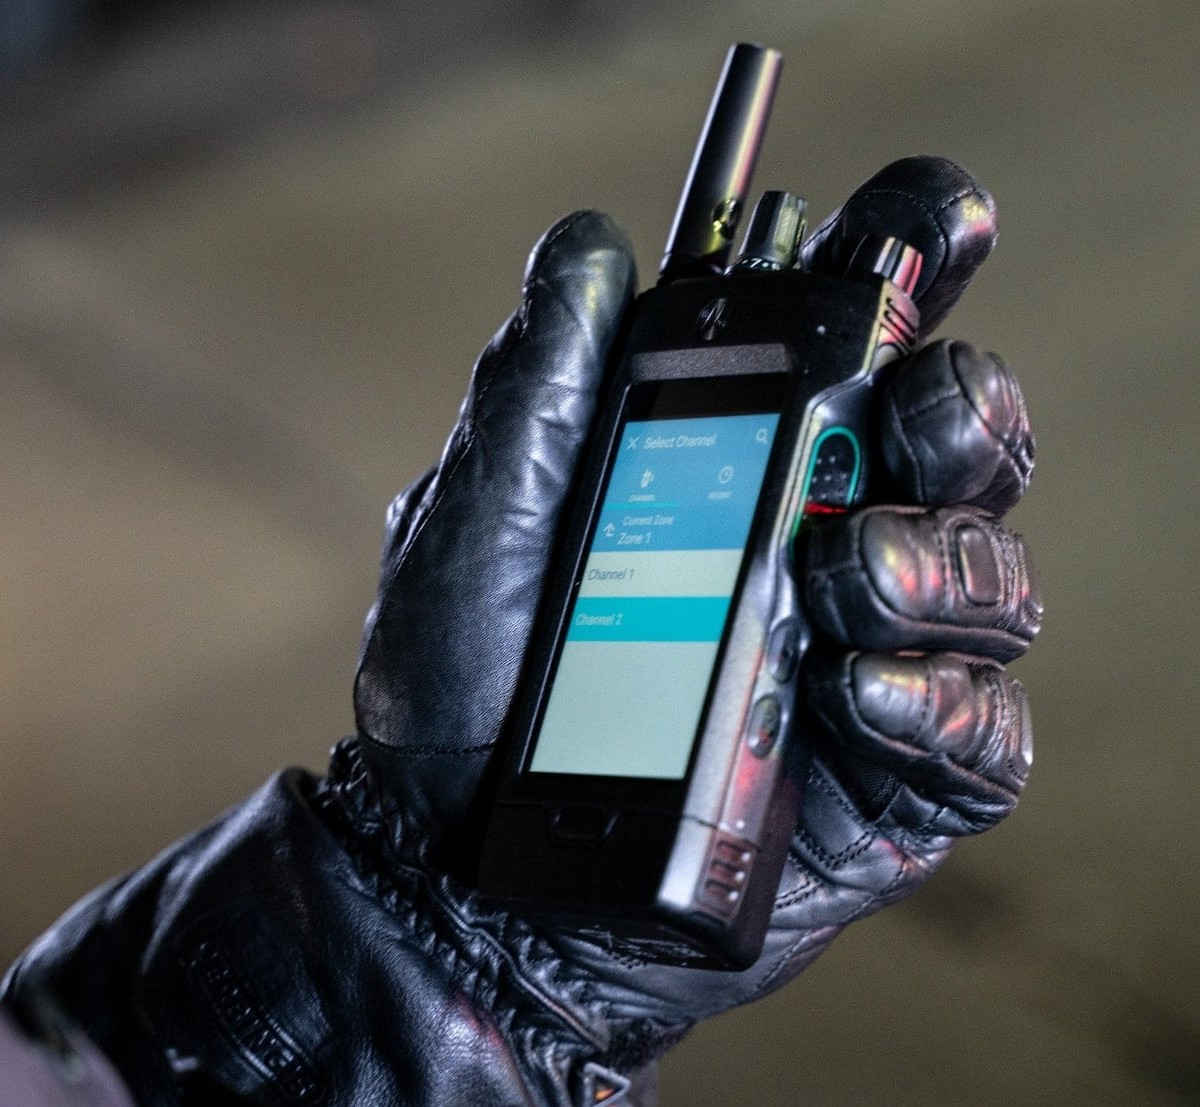 Motorola Solutions APX NEXT 2-Way Smart Radio is easy to use for public safety professionals